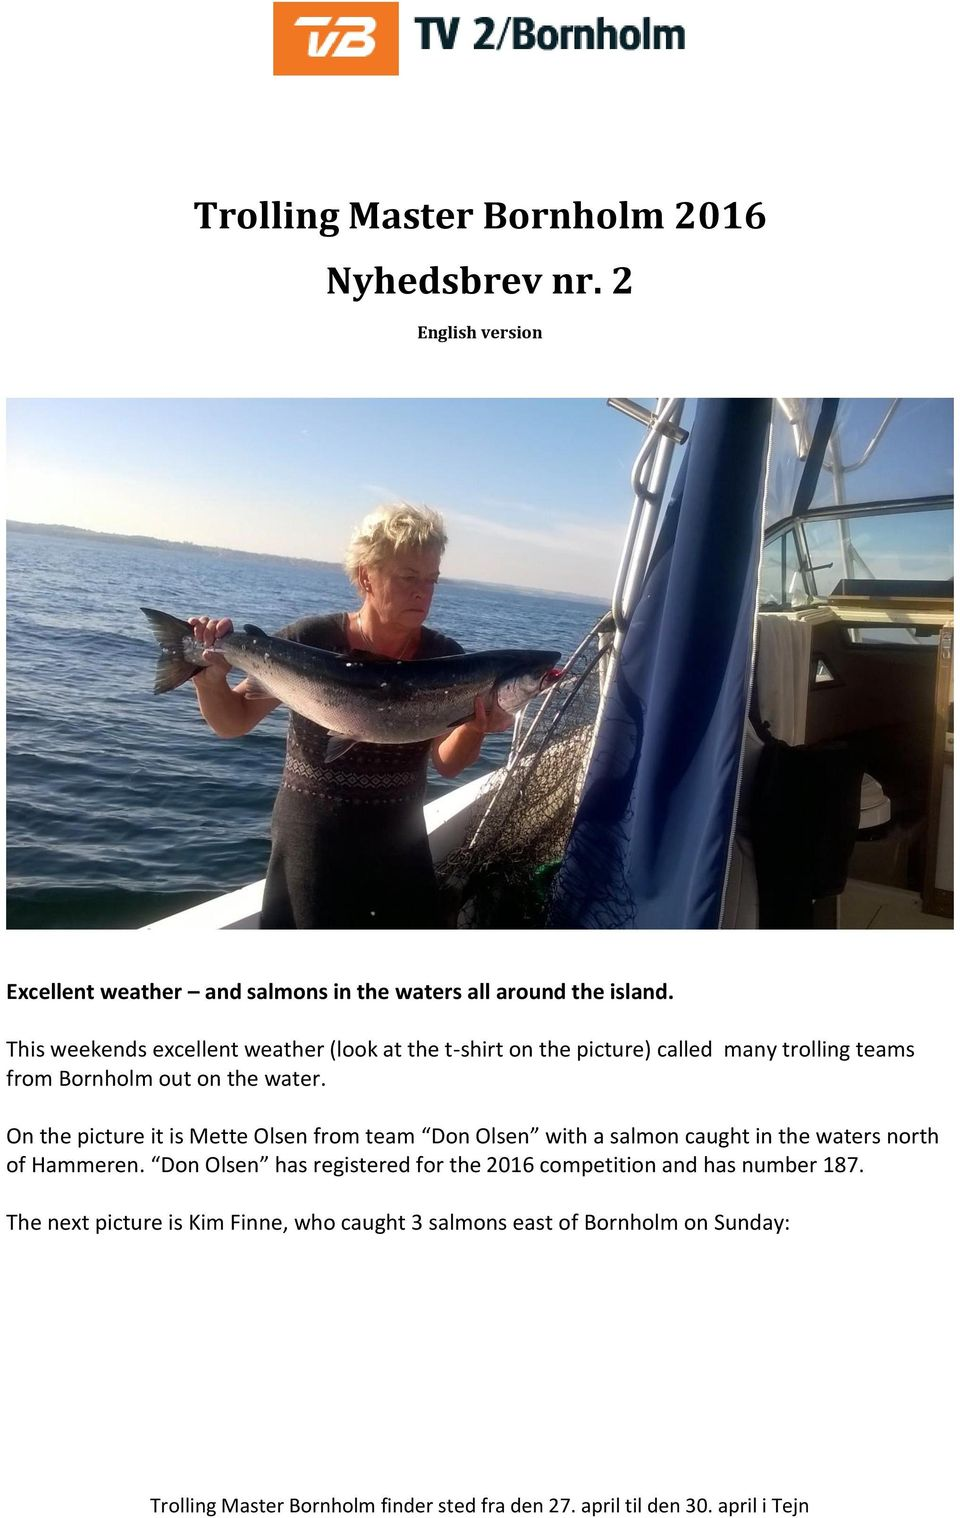 On the picture it is Mette Olsen from team Don Olsen with a salmon caught in the waters north of Hammeren.